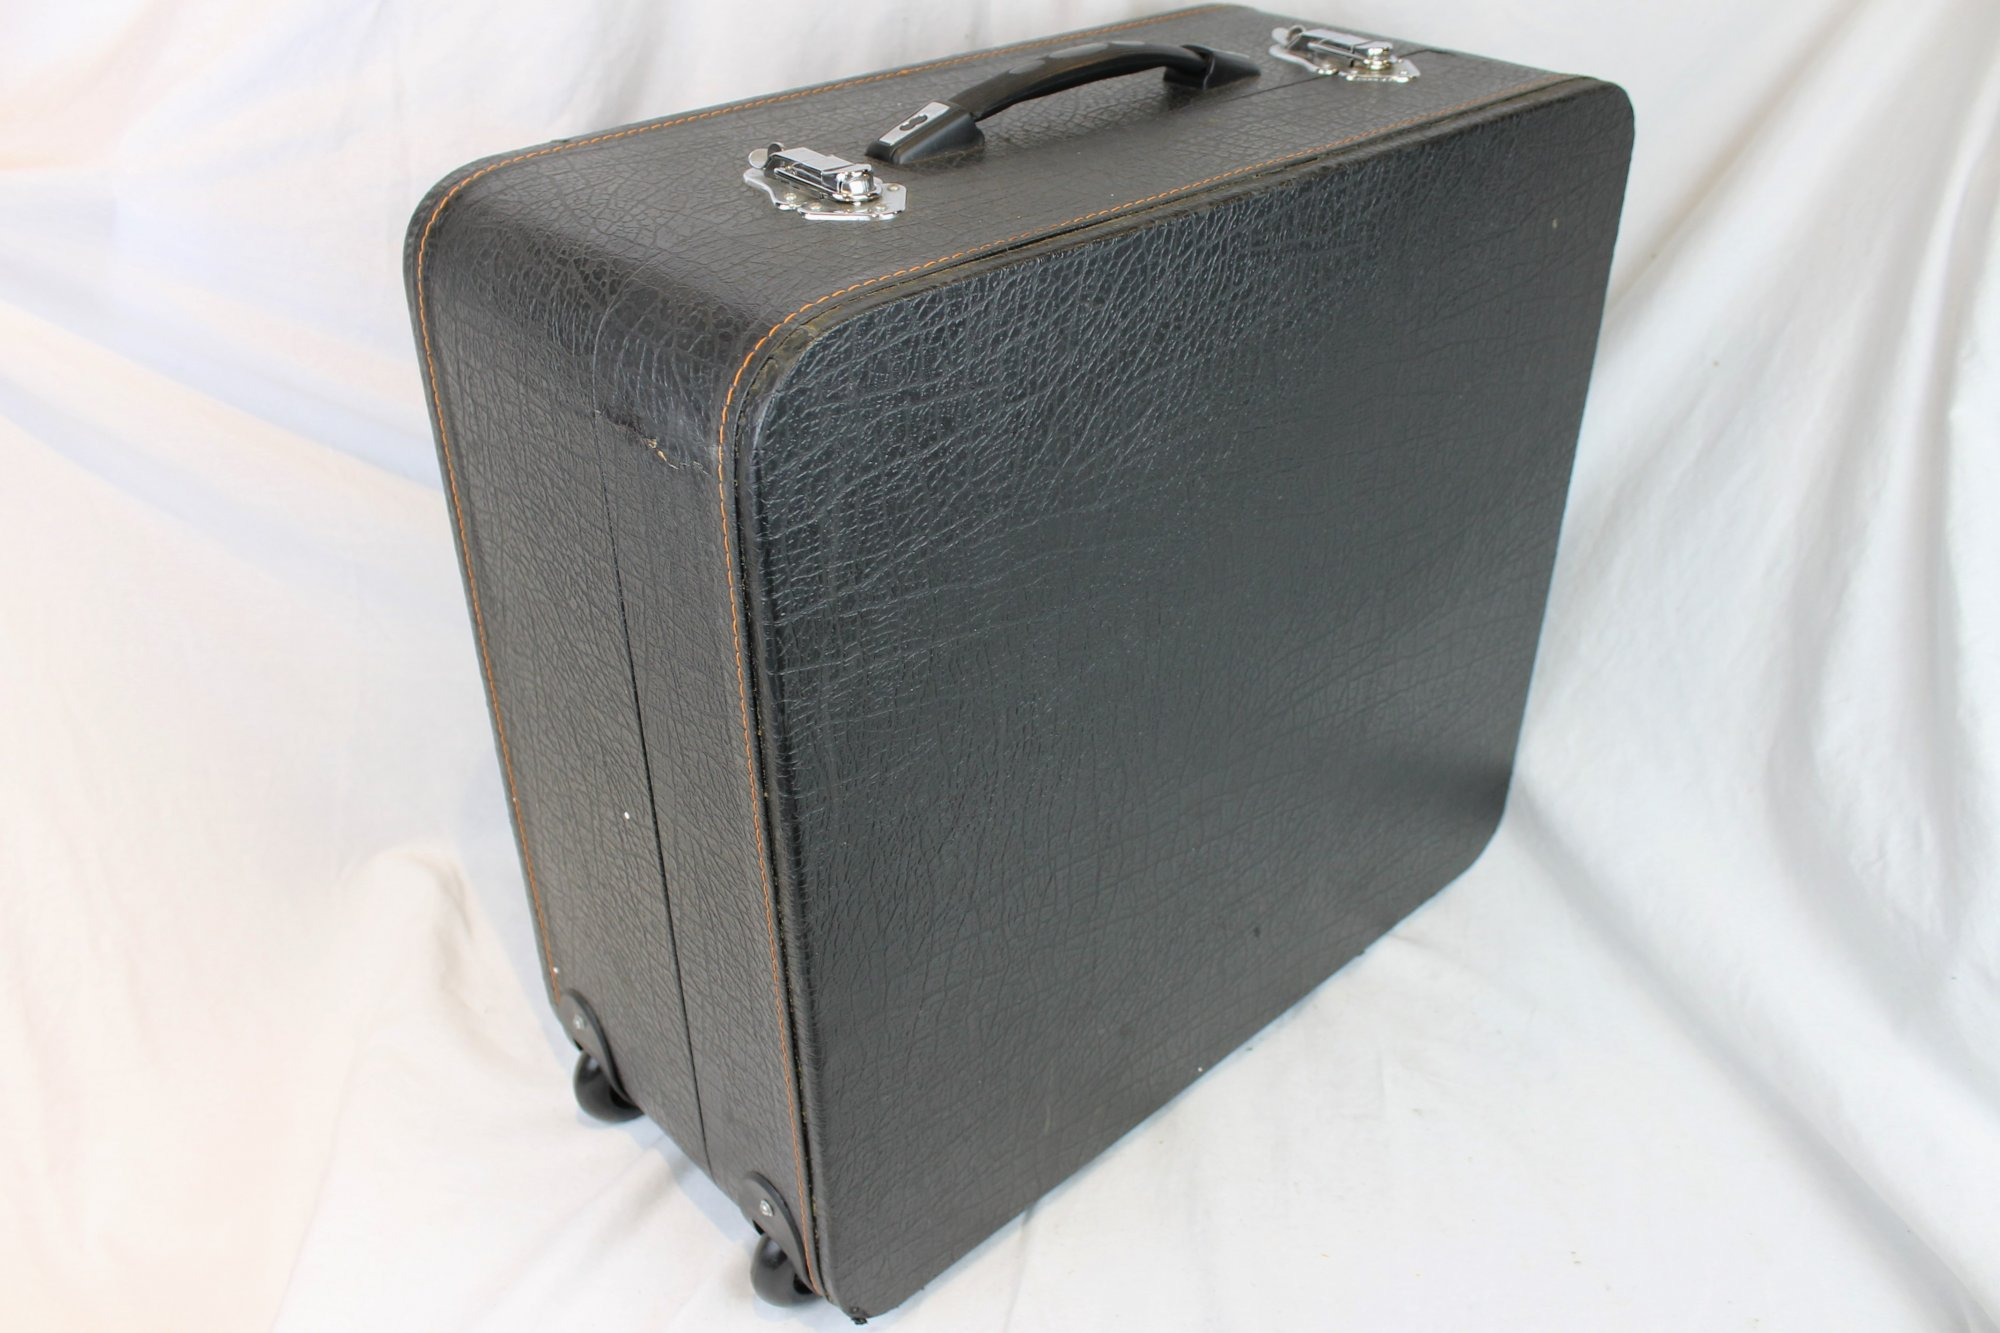 Black Accordion Trolley Hard Case 20 x 19 x 9.5 (51 cm x 48.5cm x 24cm)